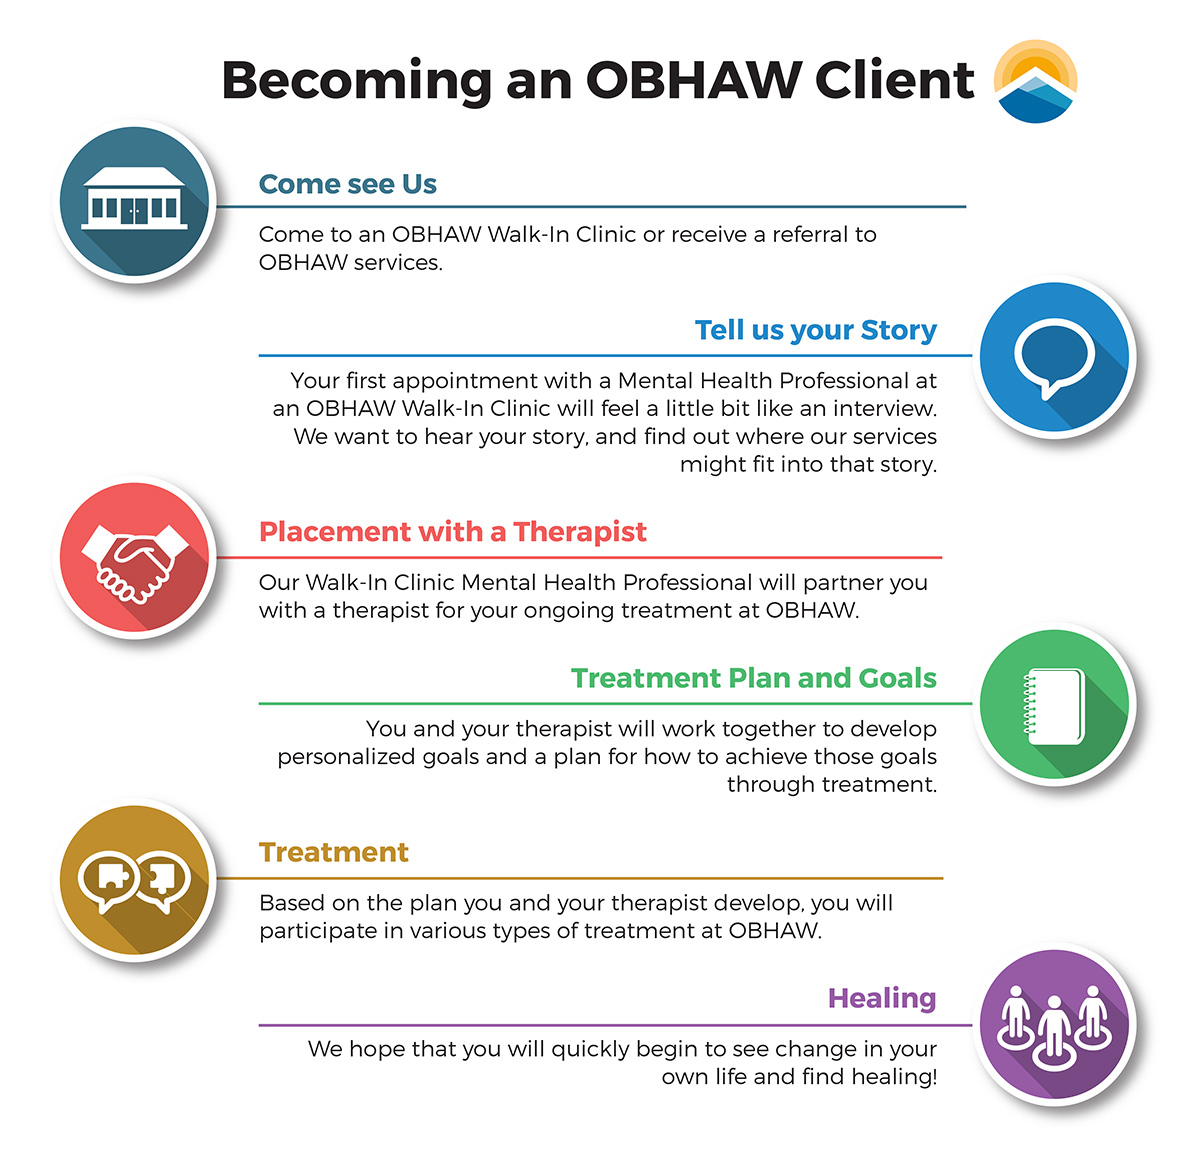 Becoming an OBHAW Client